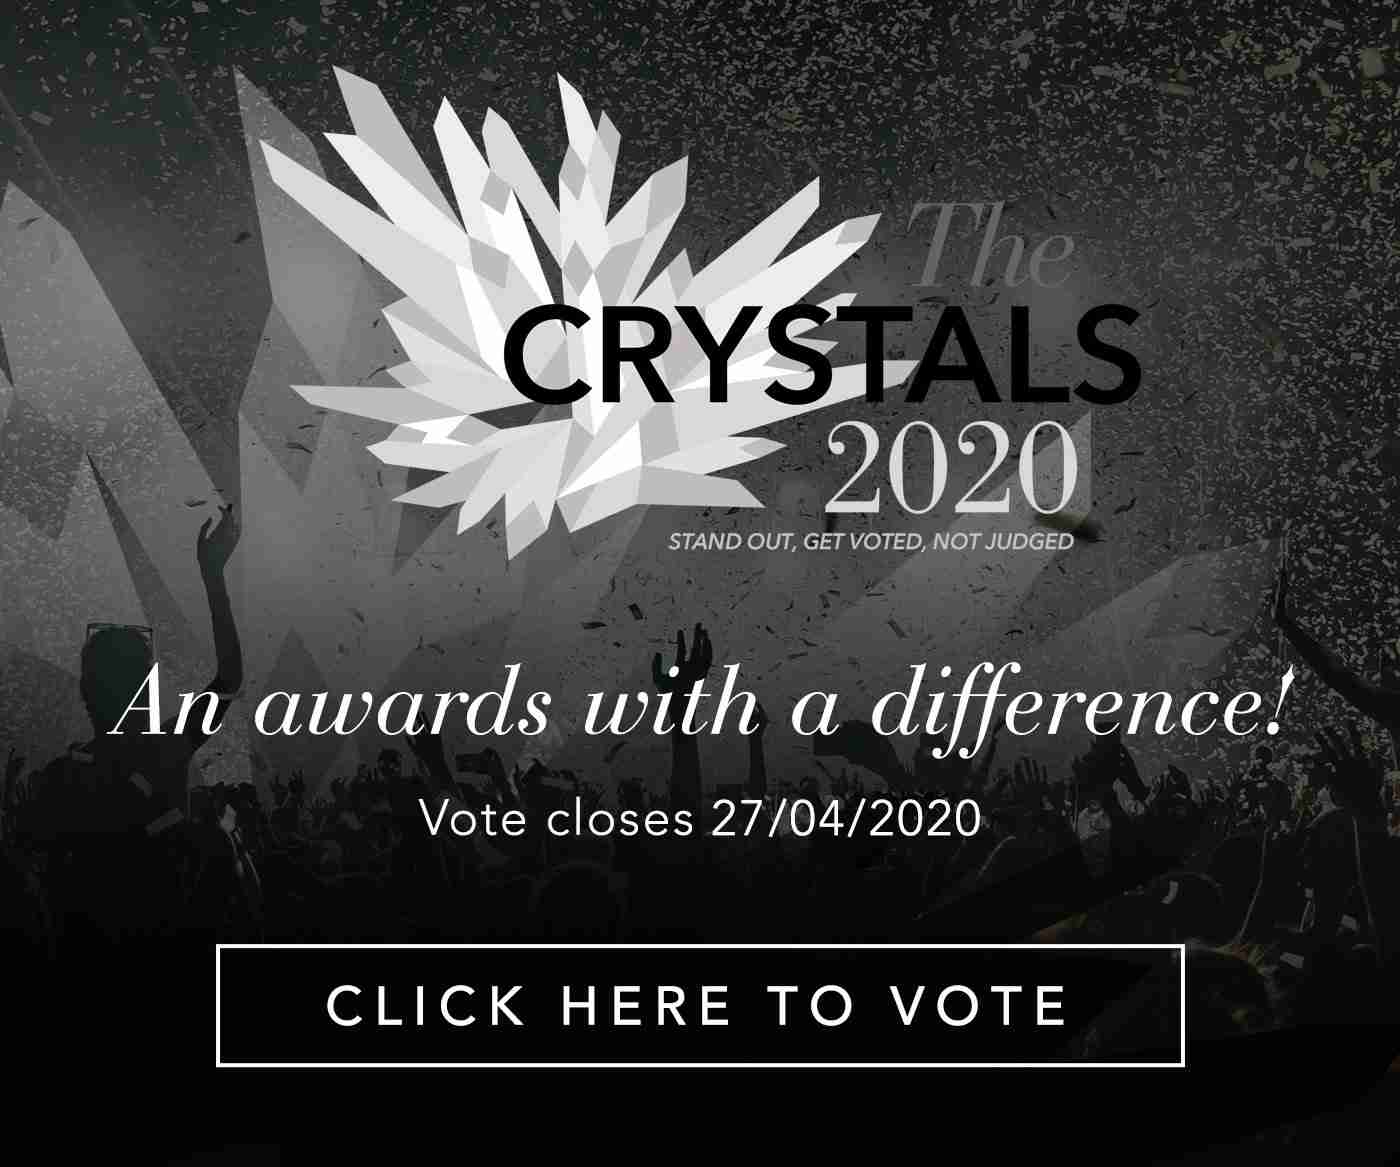 Crystal 2020 Awards